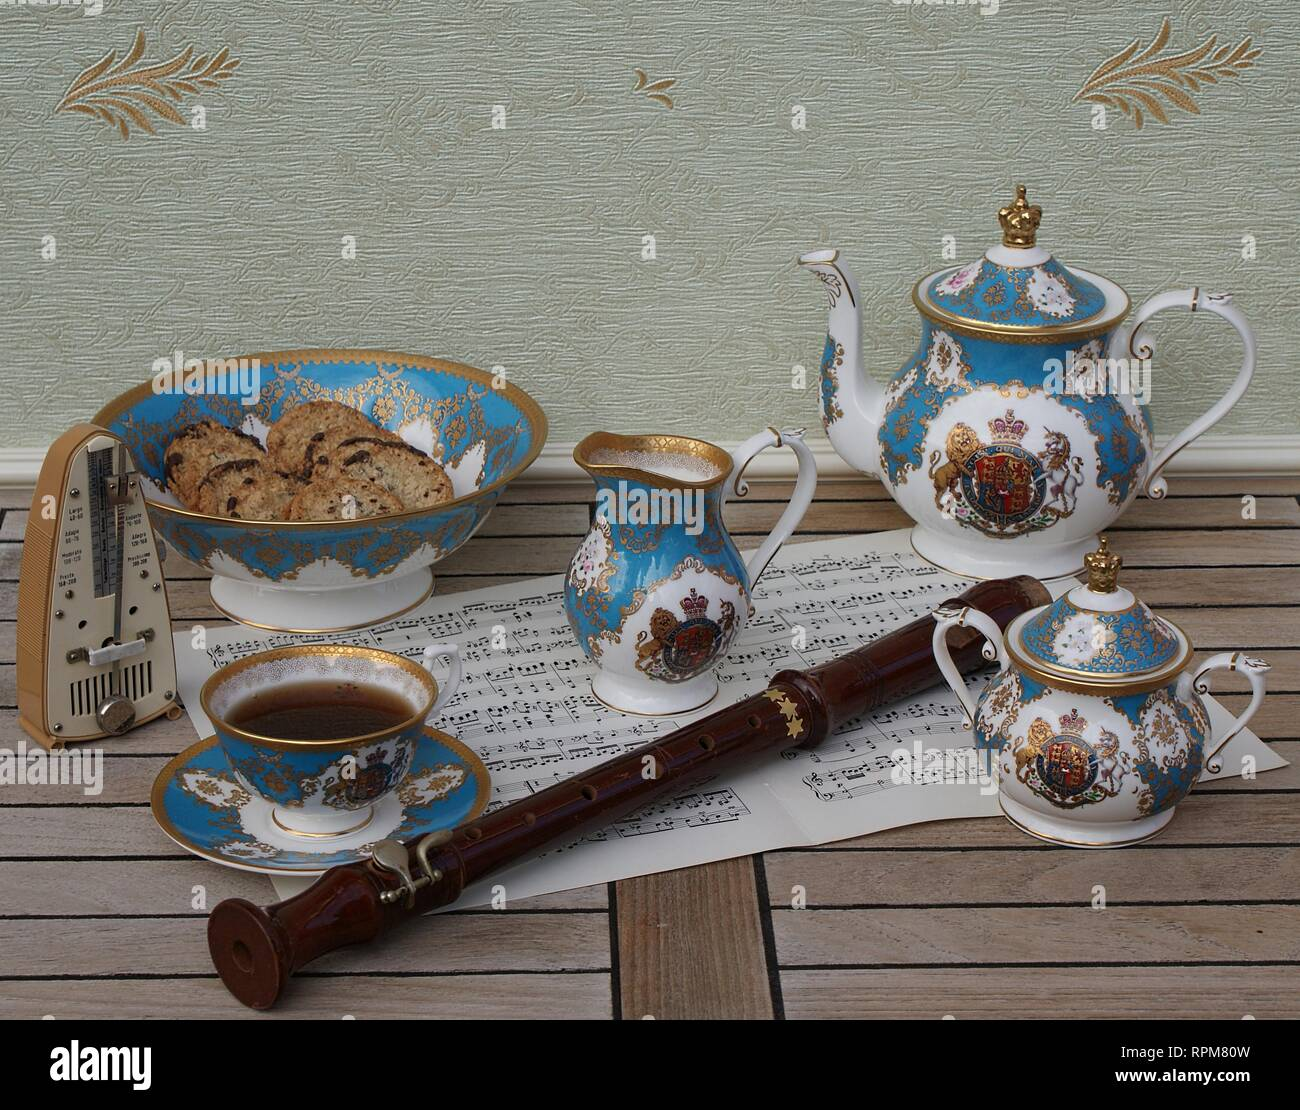 English teacup with saucer, teapot, sugar bowl, cream jug and a cake bowl with cookies, metronome for music and a block flute on a sheet of music - Stock Image